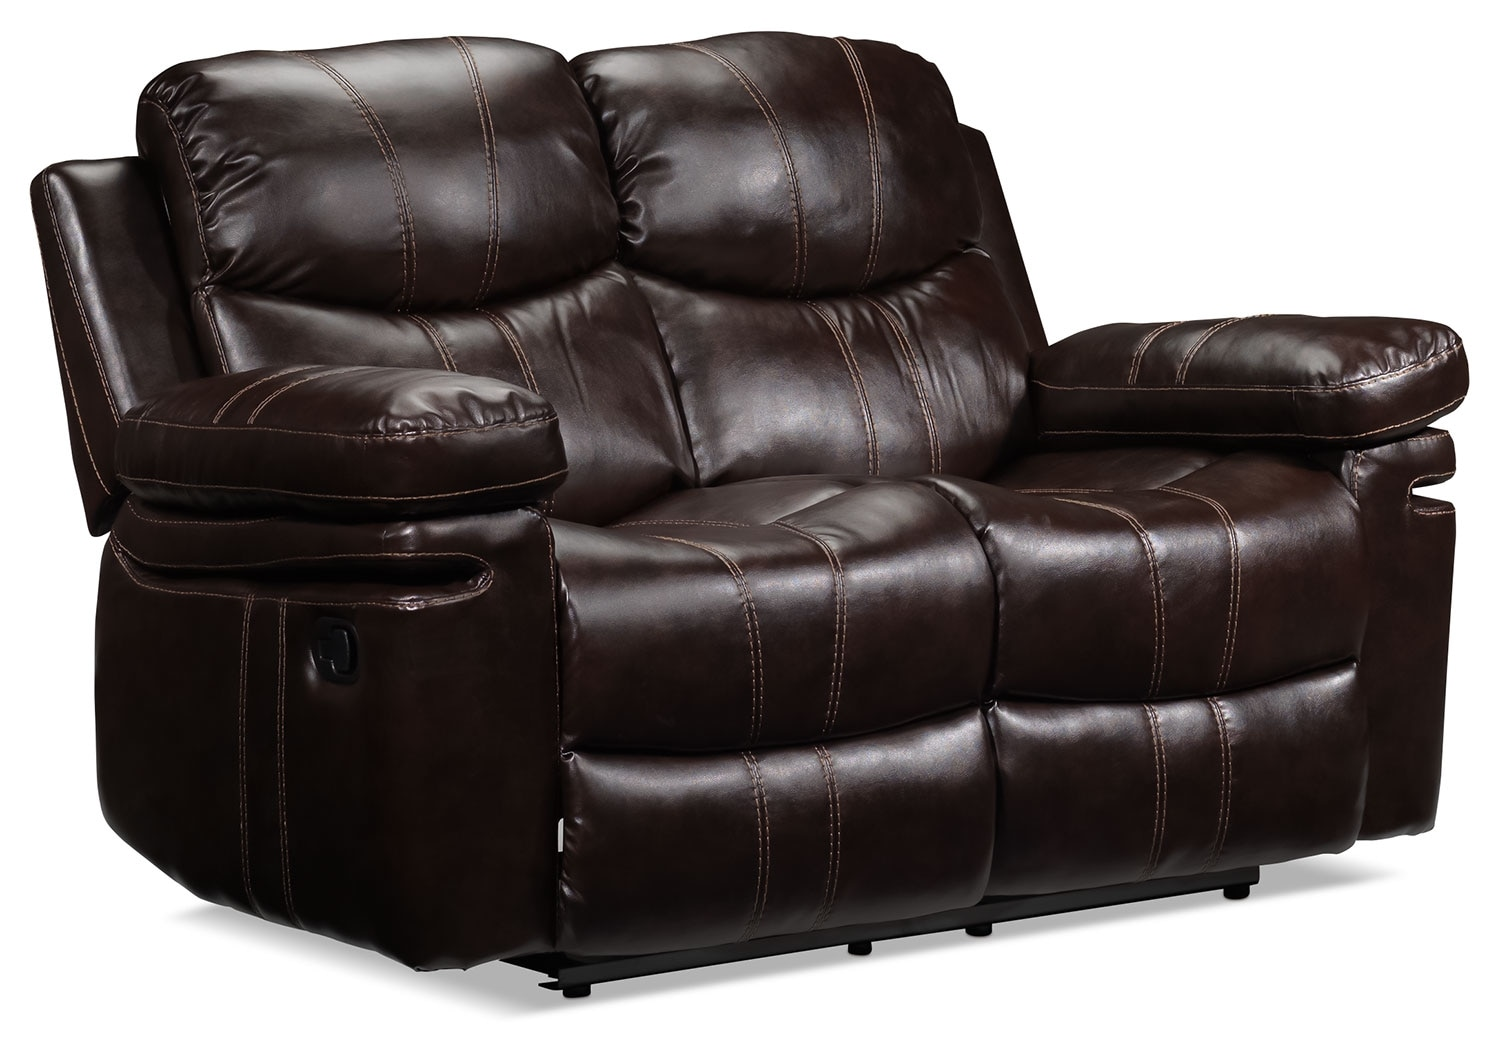 Barcelona Reclining Loveseat - Brown